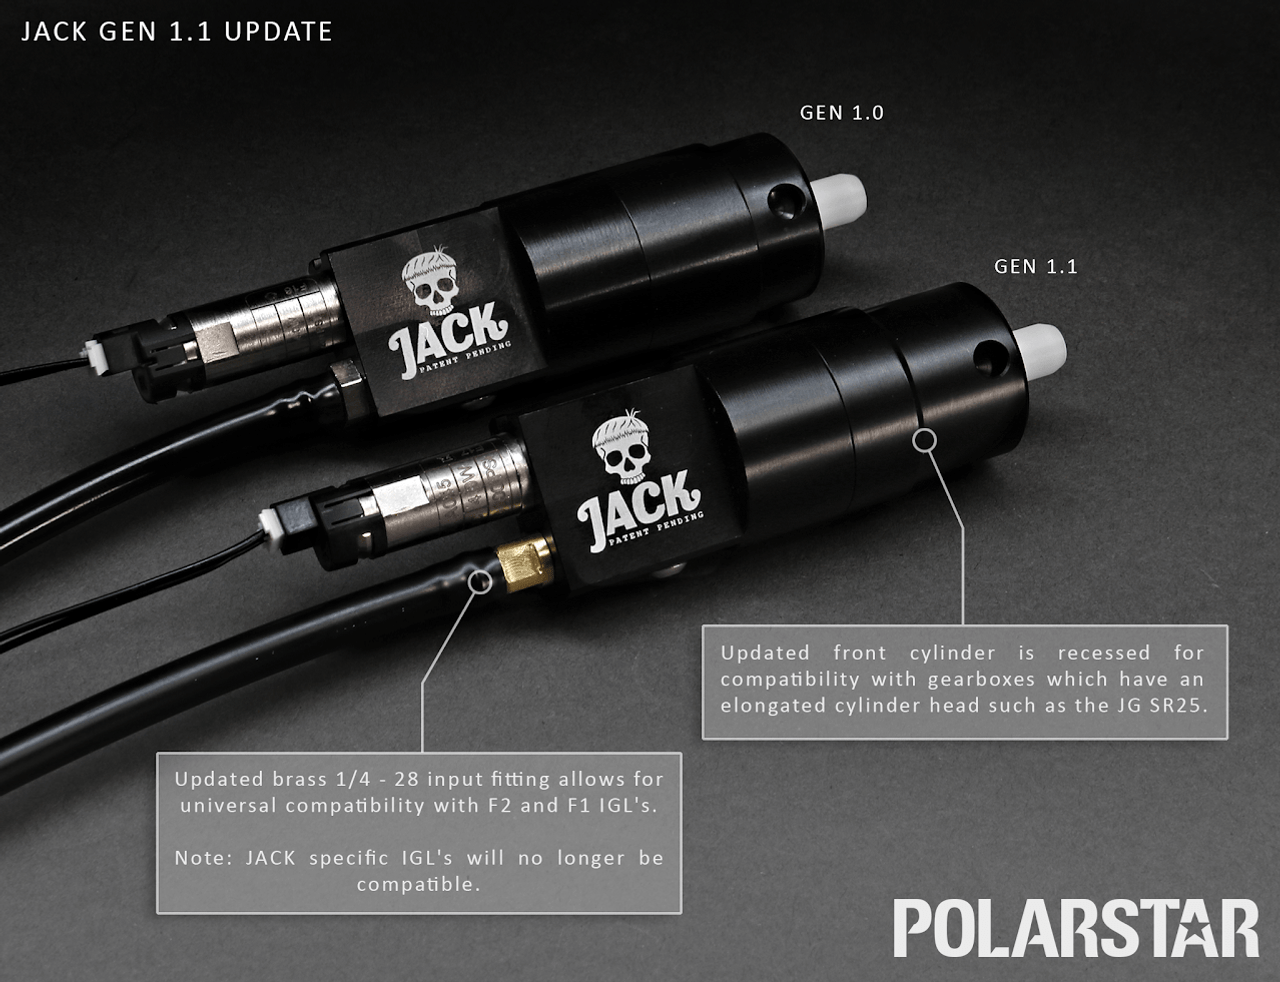 Differences between the JACK 1.0 and JACK 1.1.  Please note the differences so that you can choose the correct IGL for your JACK!